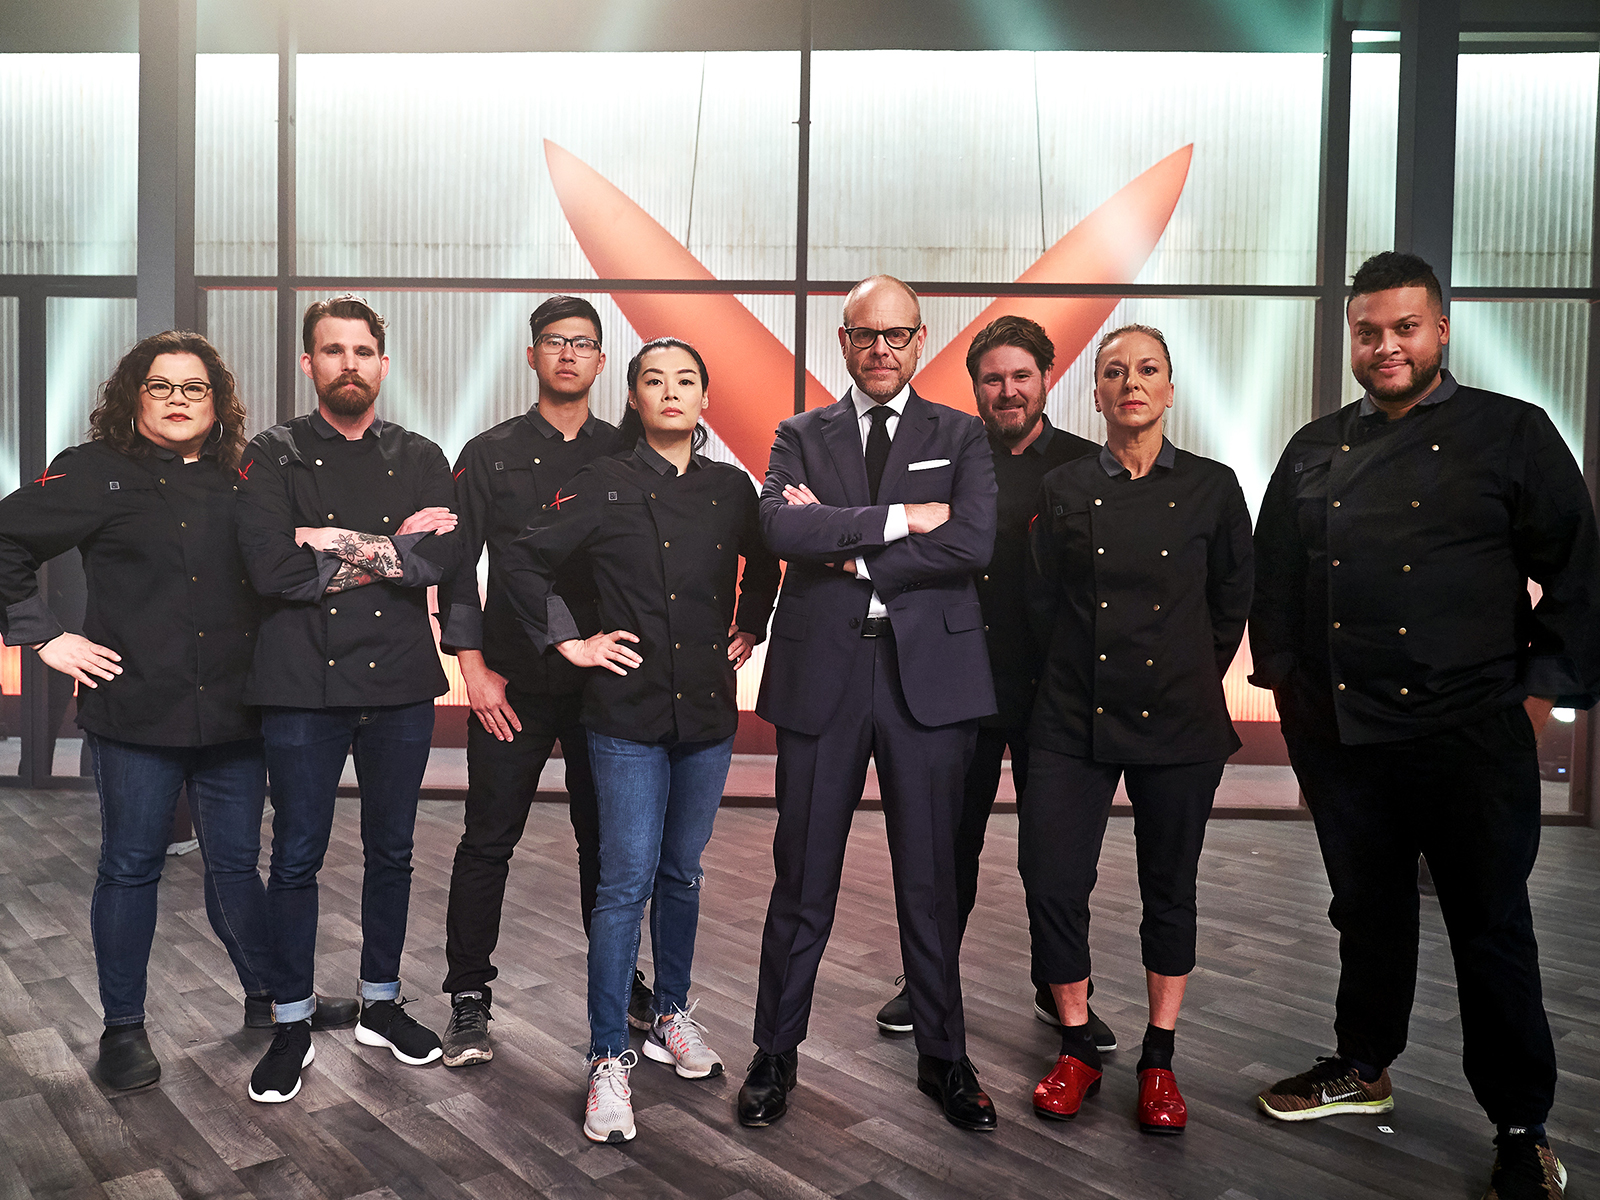 alton brown and chefs for iron chef on food network